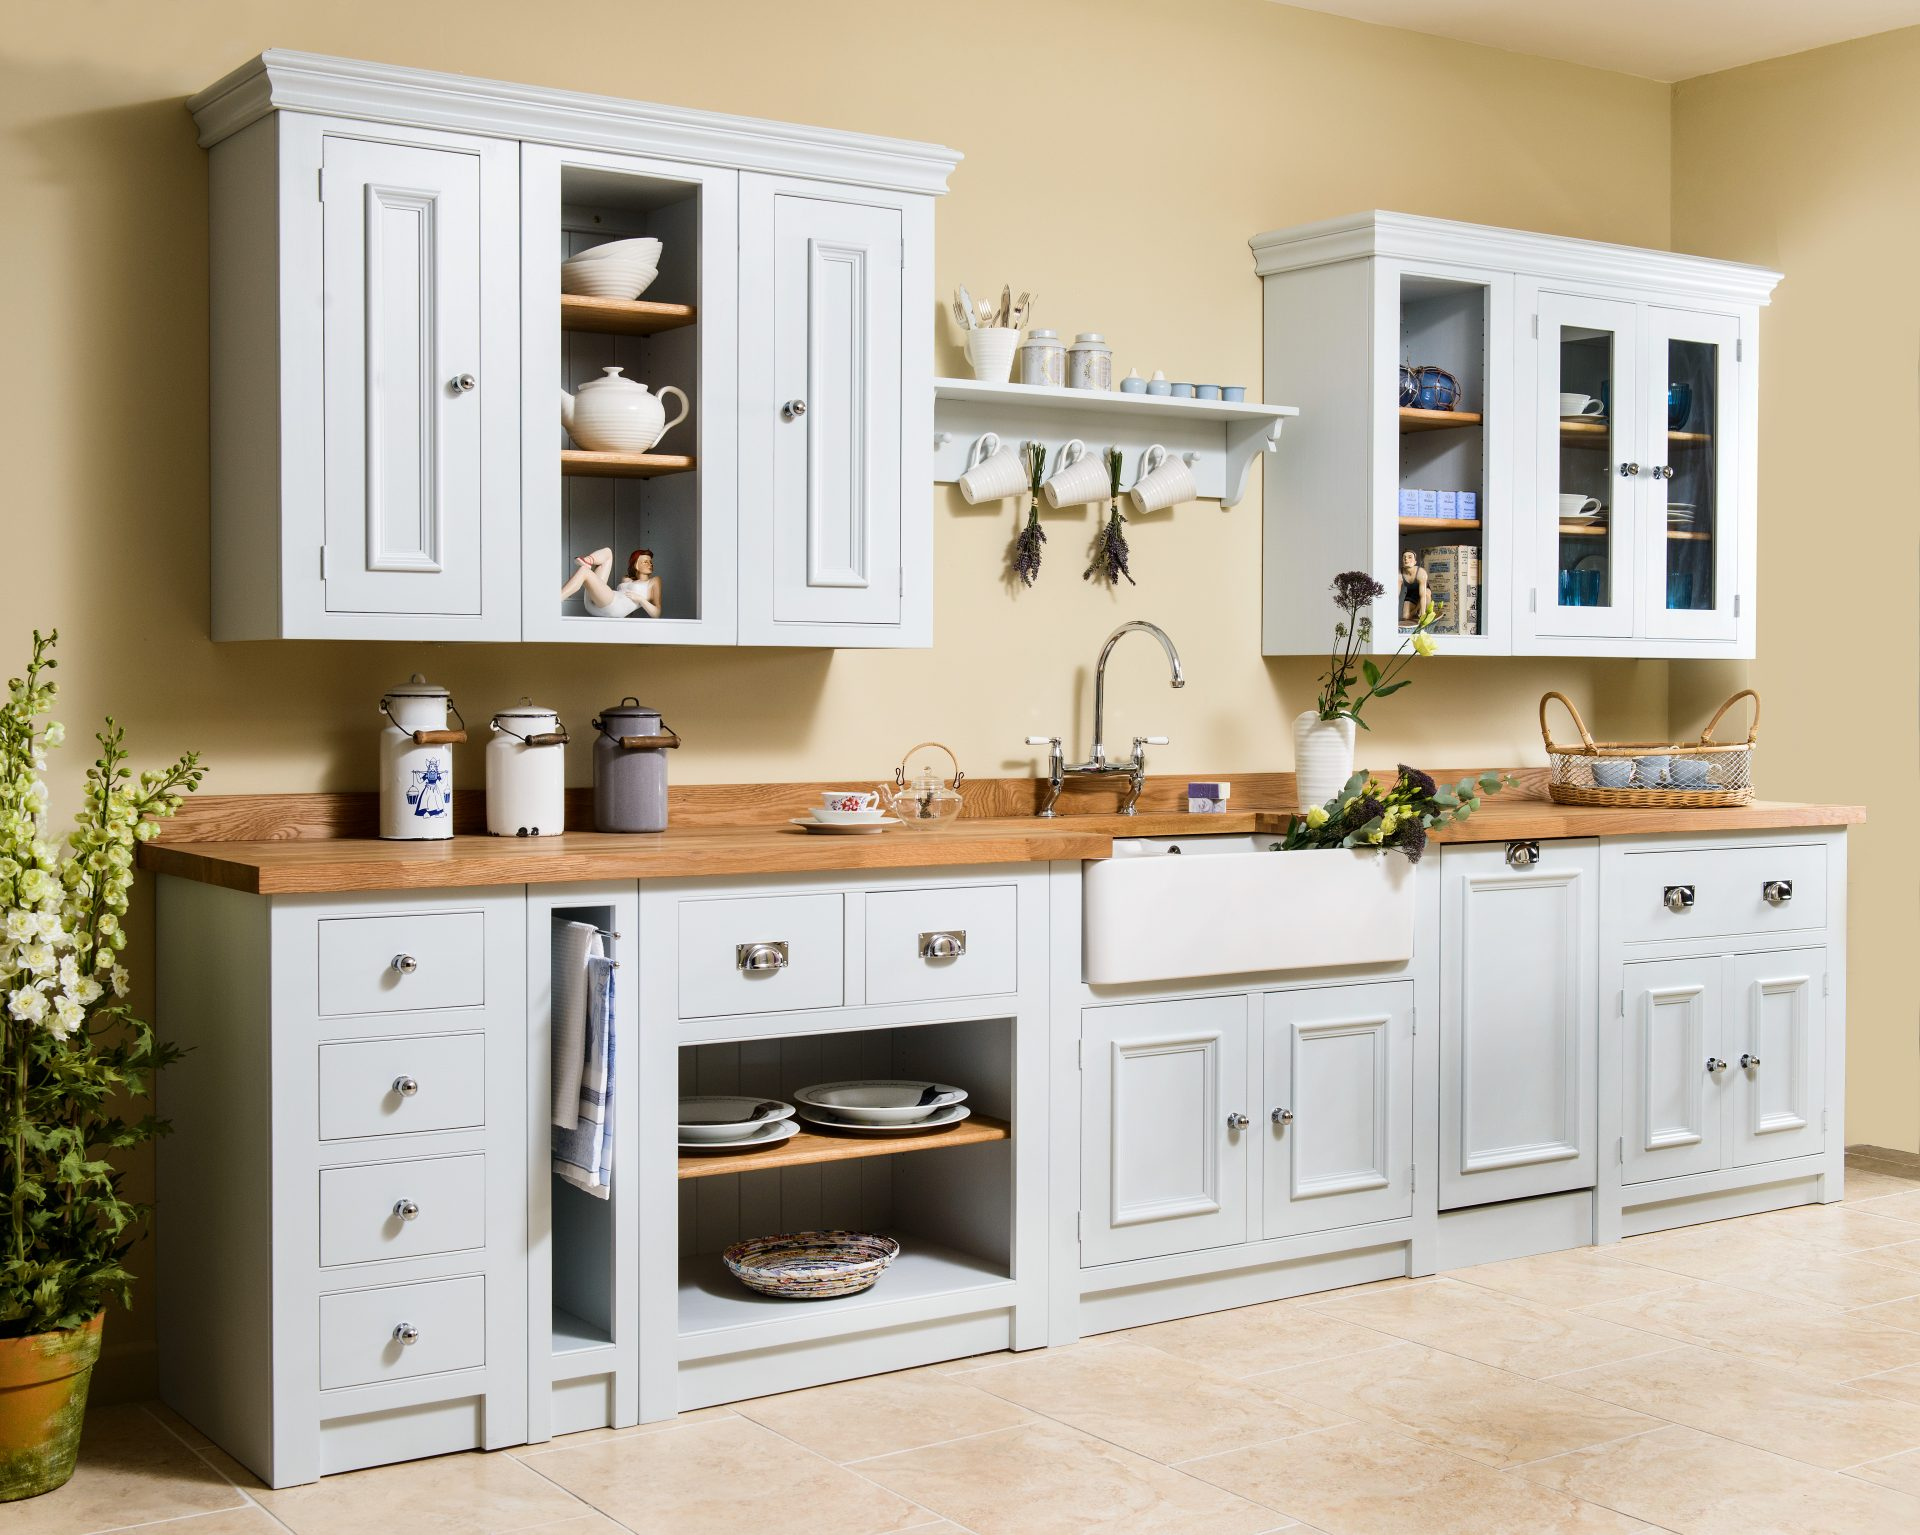 Maison kitchen price guide